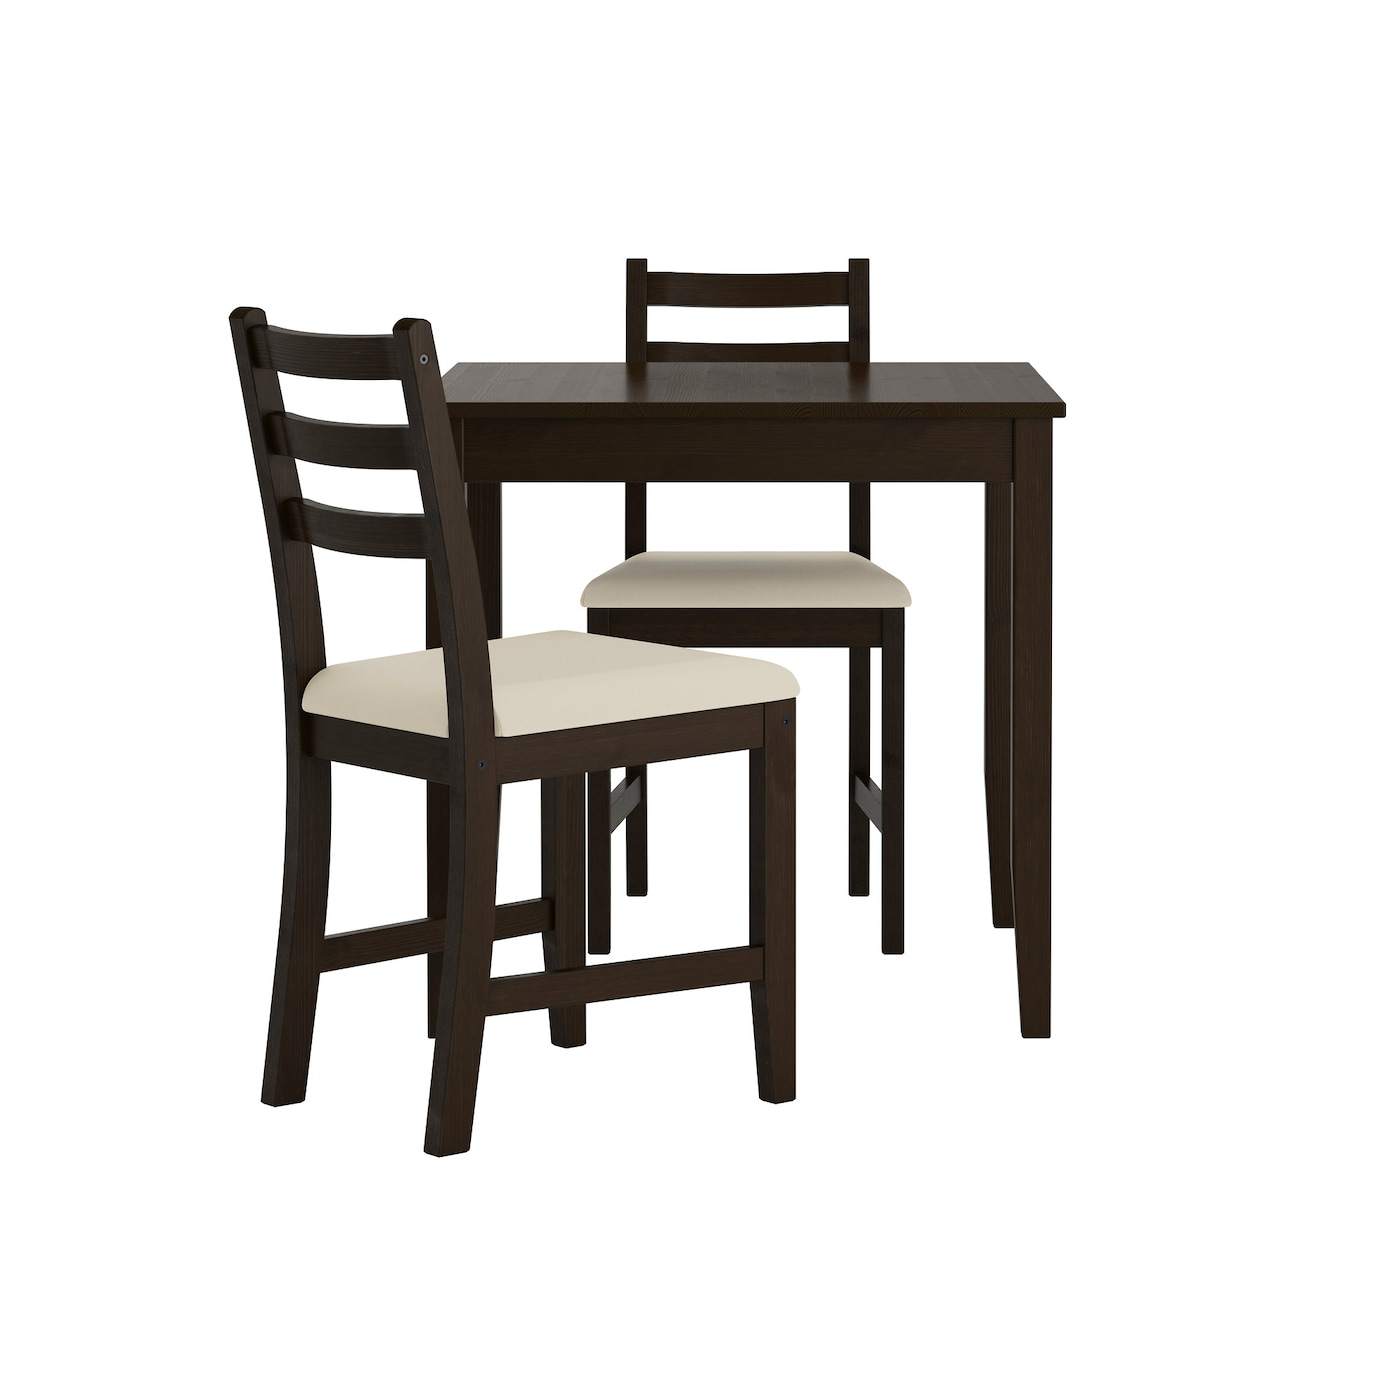 LERHAMN Table and 2 chairs Black brown ramna beige 74x74 cm IKEA